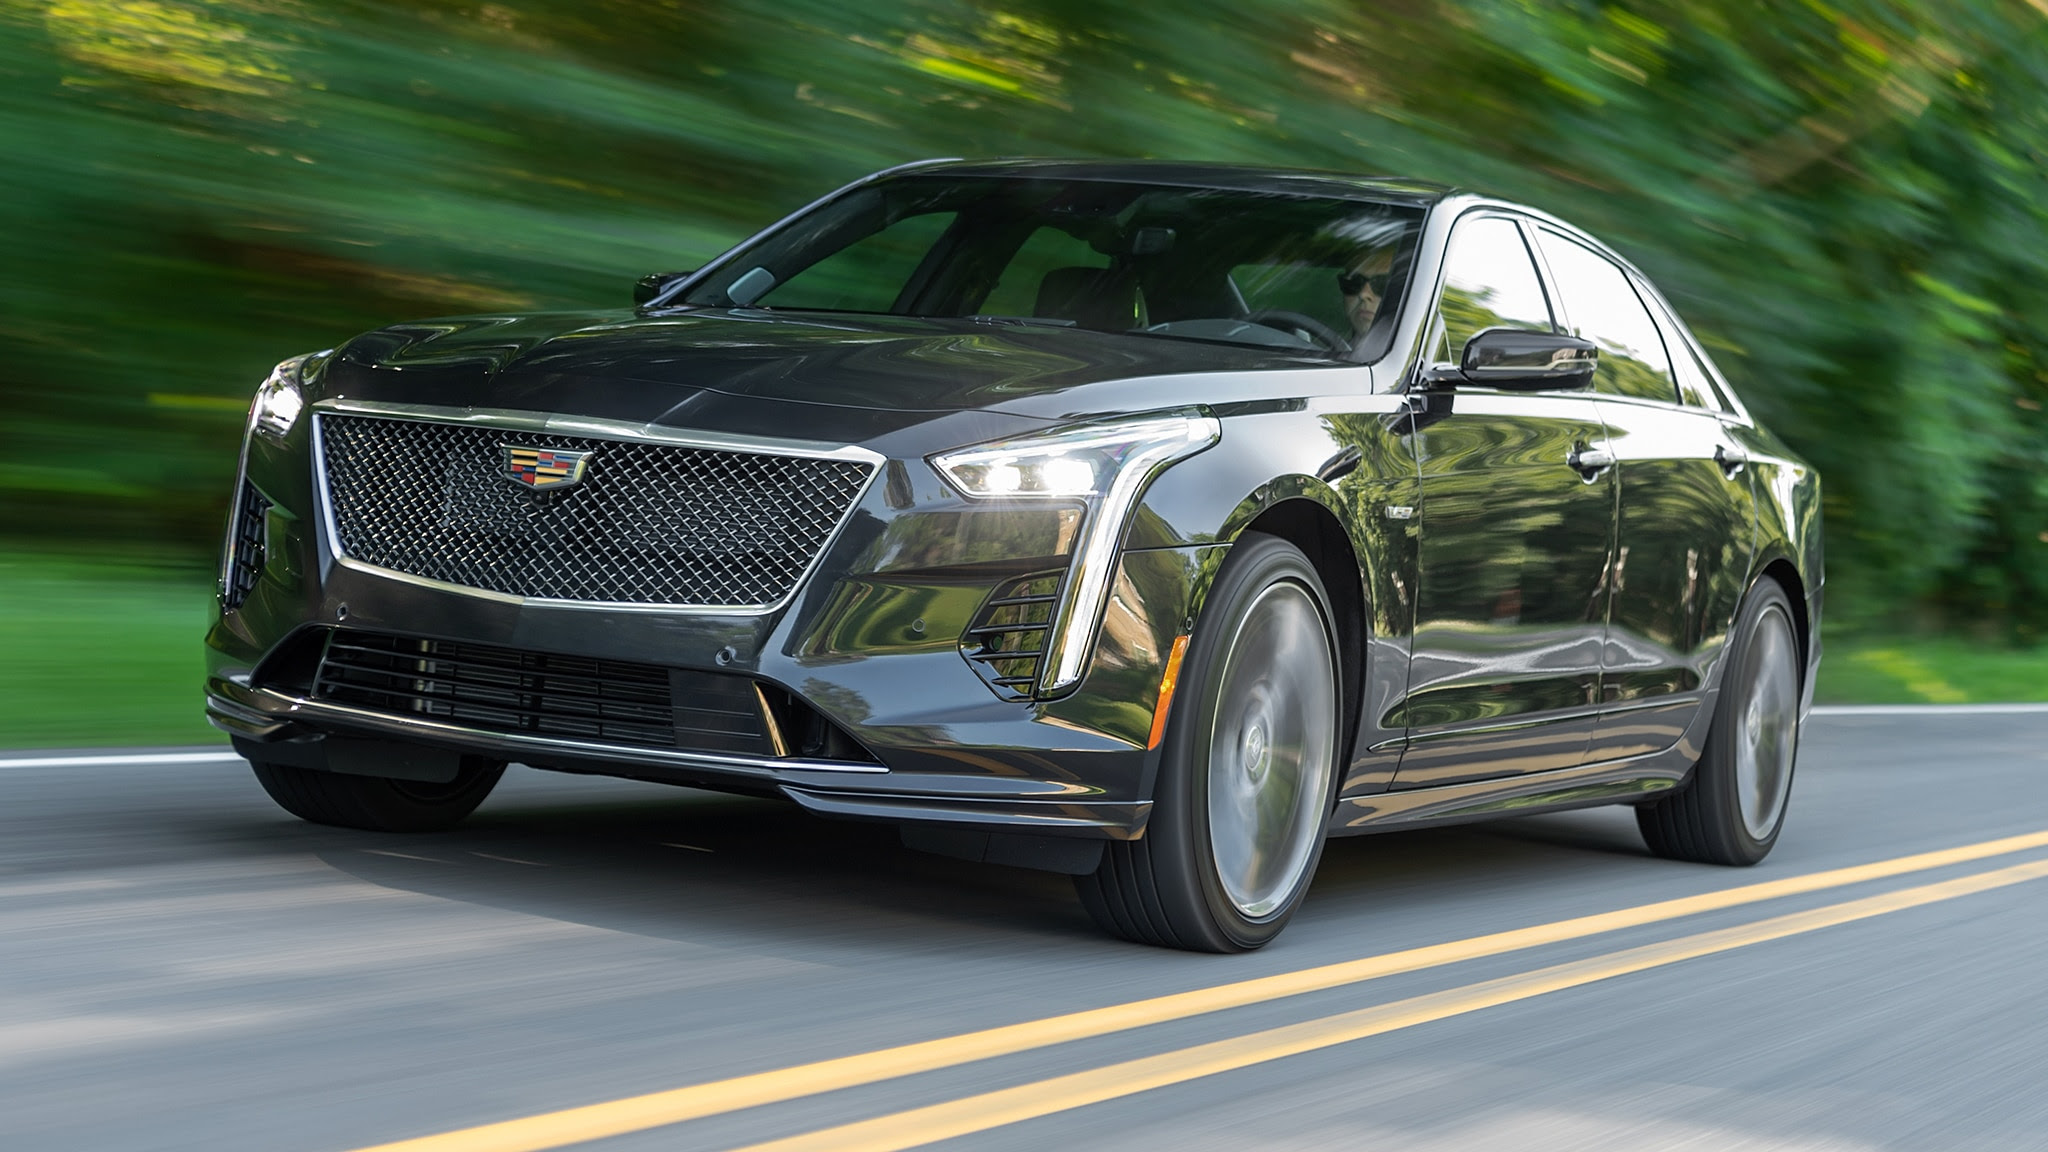 2019 cadillac ct6v first drive review positively sublime